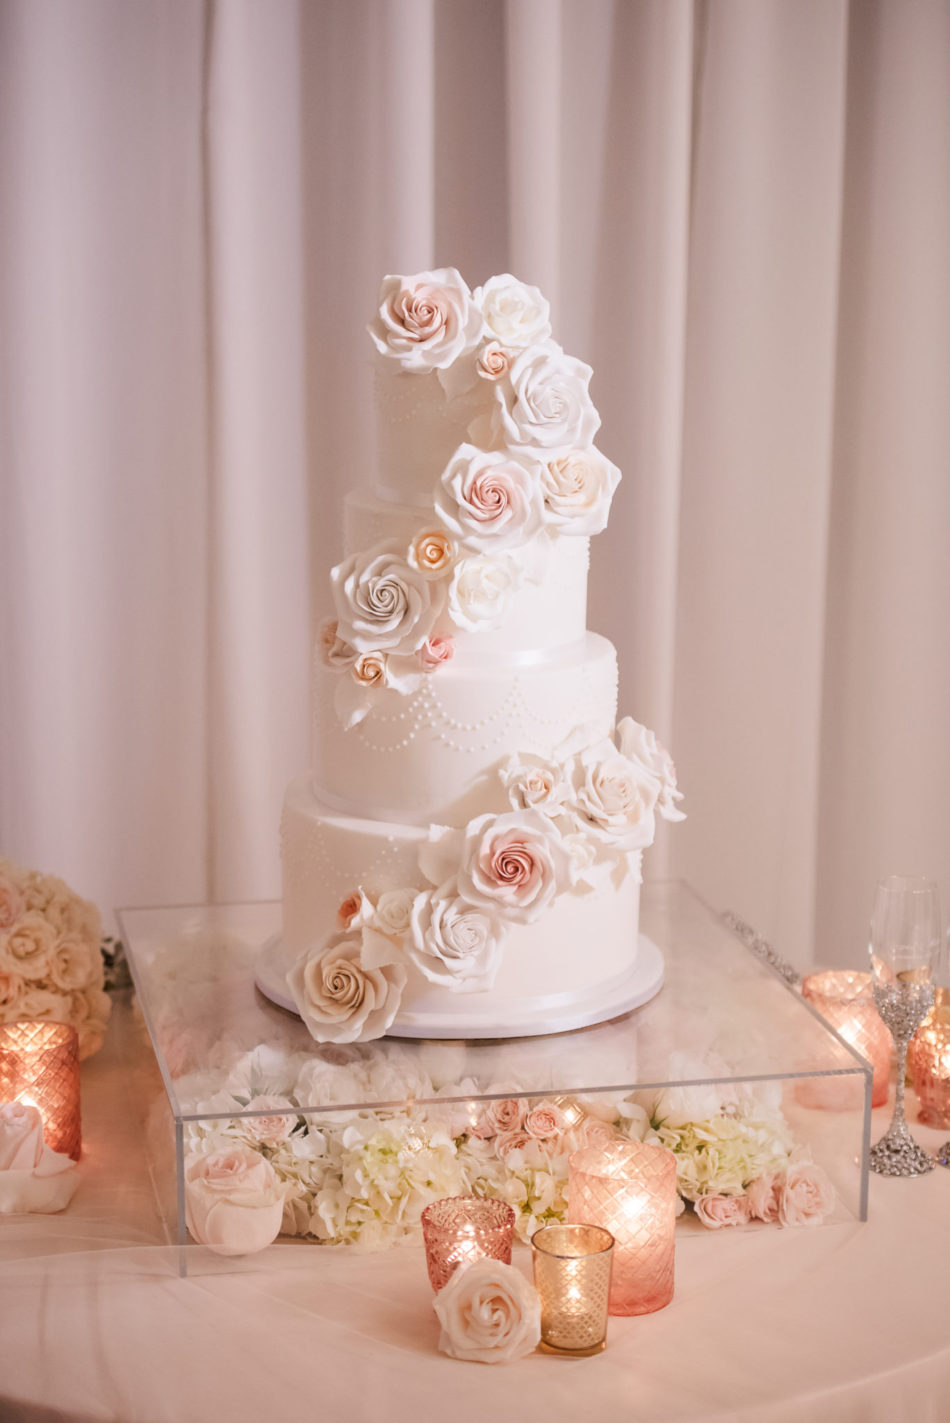 wedding cake, blush cake decor, dreamy seaside wedding, floral design, florist, wedding florist, wedding flowers, orange county weddings, orange county wedding florist, orange county florist, orange county floral design, flowers by cina